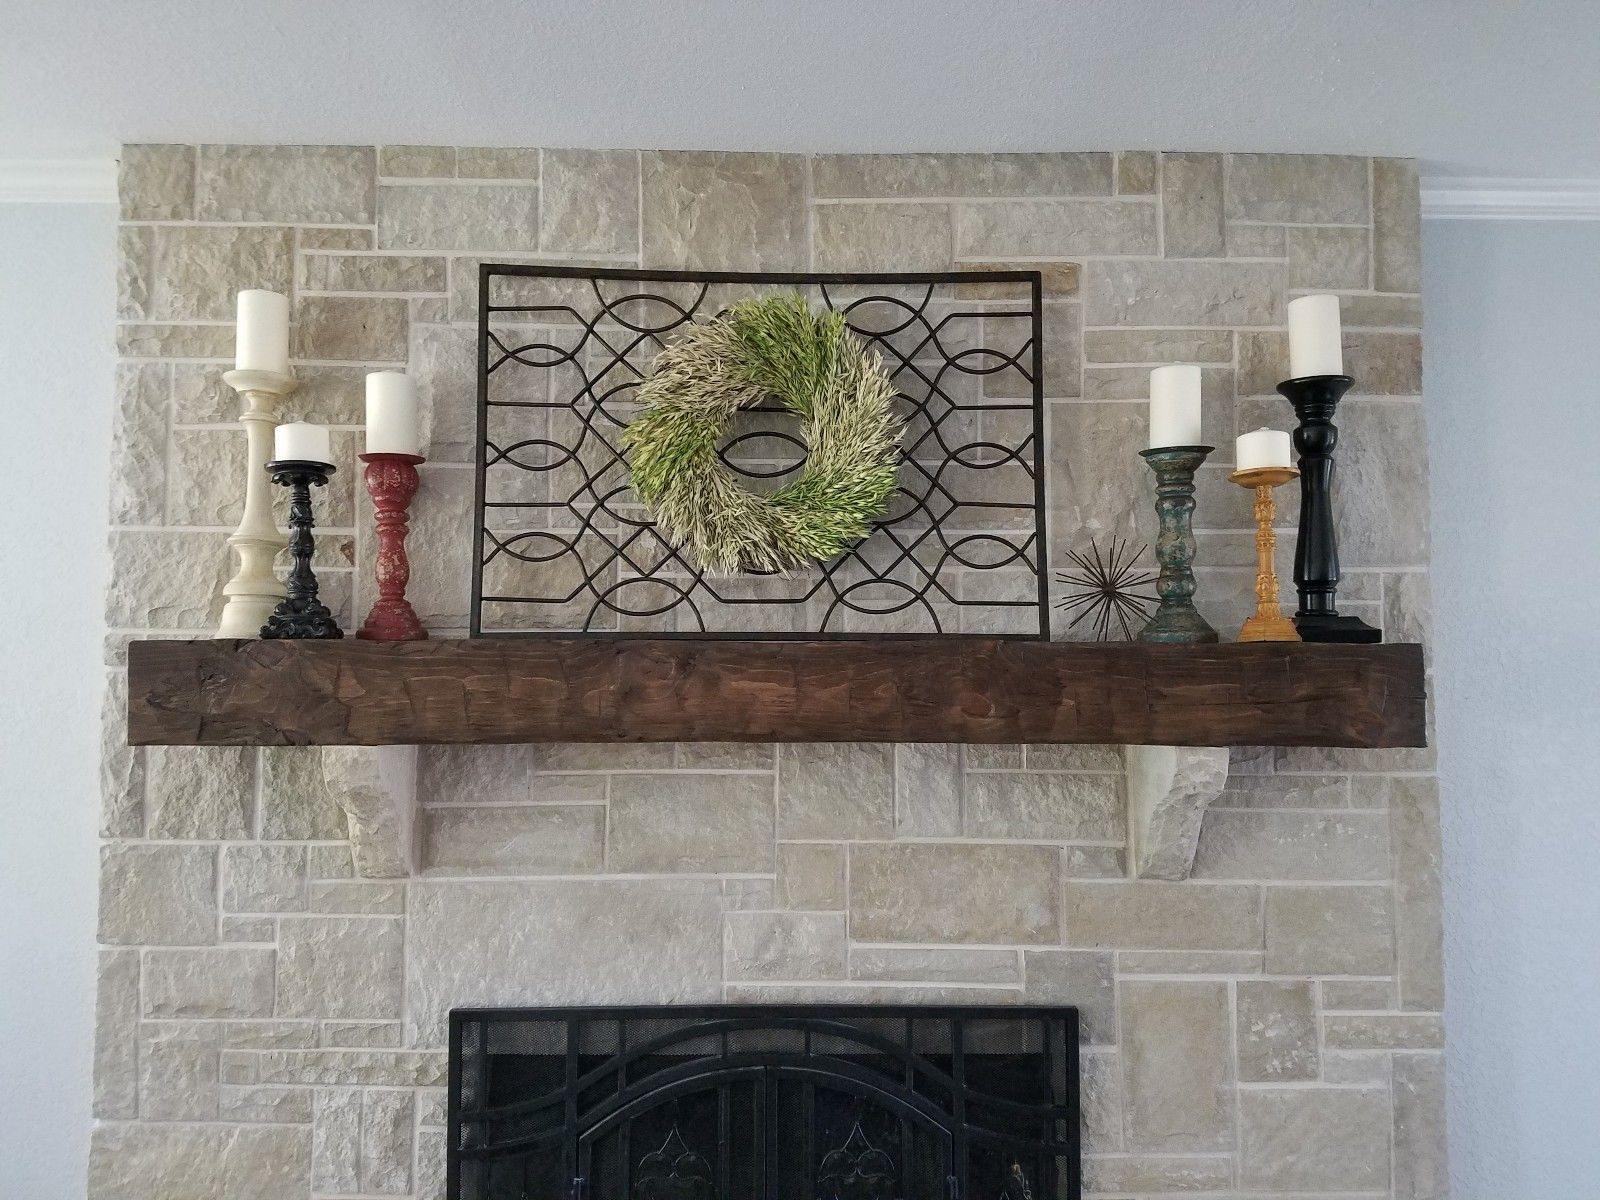 6 Ft Fireplace Mantel New 6 Foot Hand Hewn Rustic Barn Beam Style Fireplace Mantel In